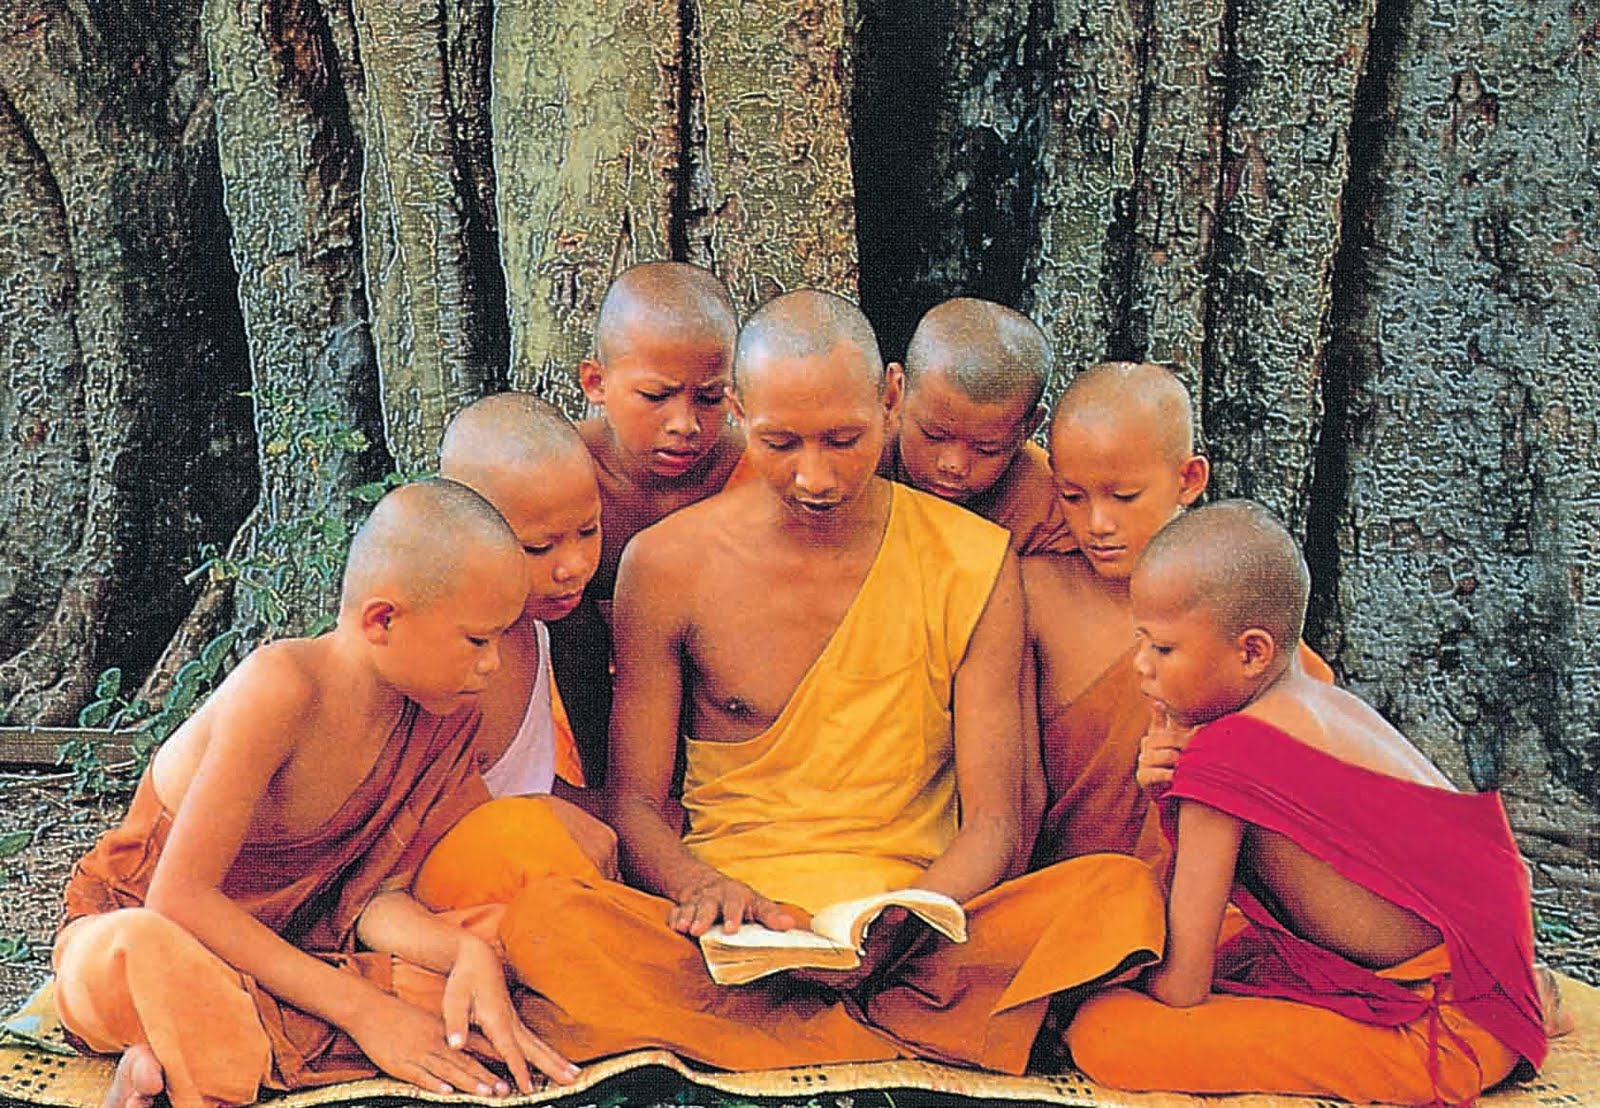 The Tree of Life: The 'Modern' Buddhists